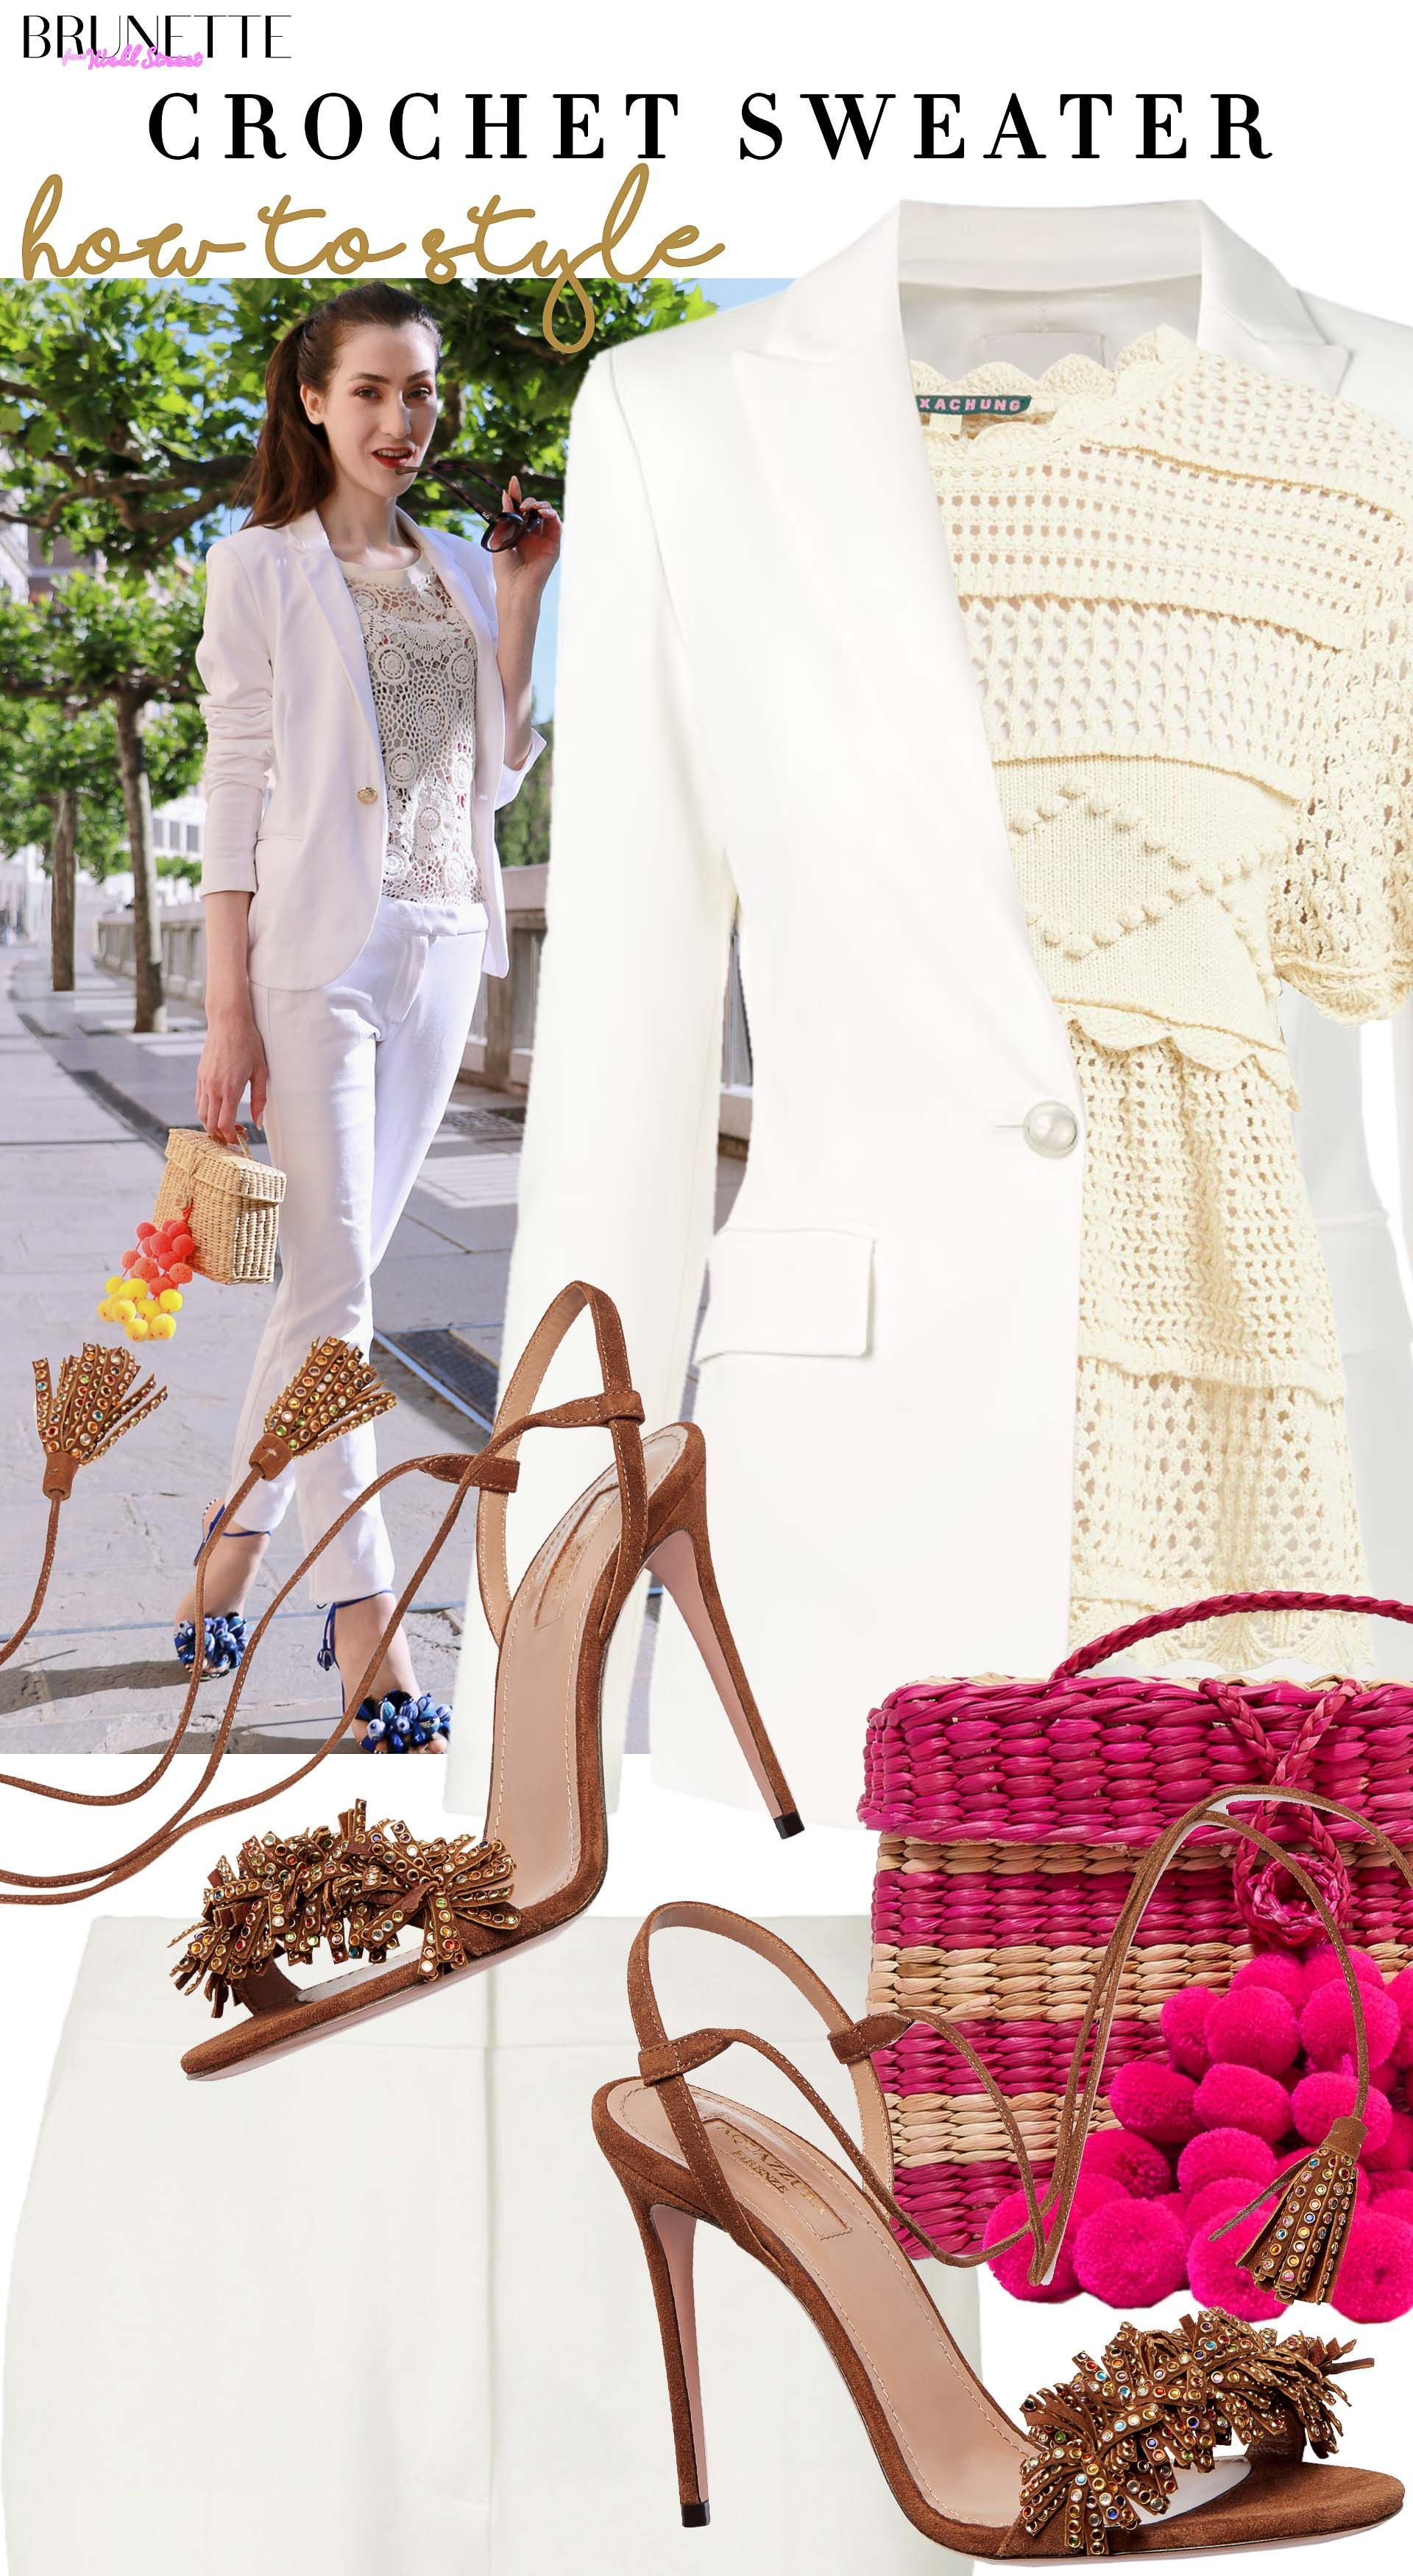 Don't know how to Dress Up a Sweater for Work? Problem solved! #whitepantsuit Brunette from Wall Street how to dress up sweater white pantsuit aquazzura sandals nannacay bag #workattire #beige #officelook #whitepantsuit